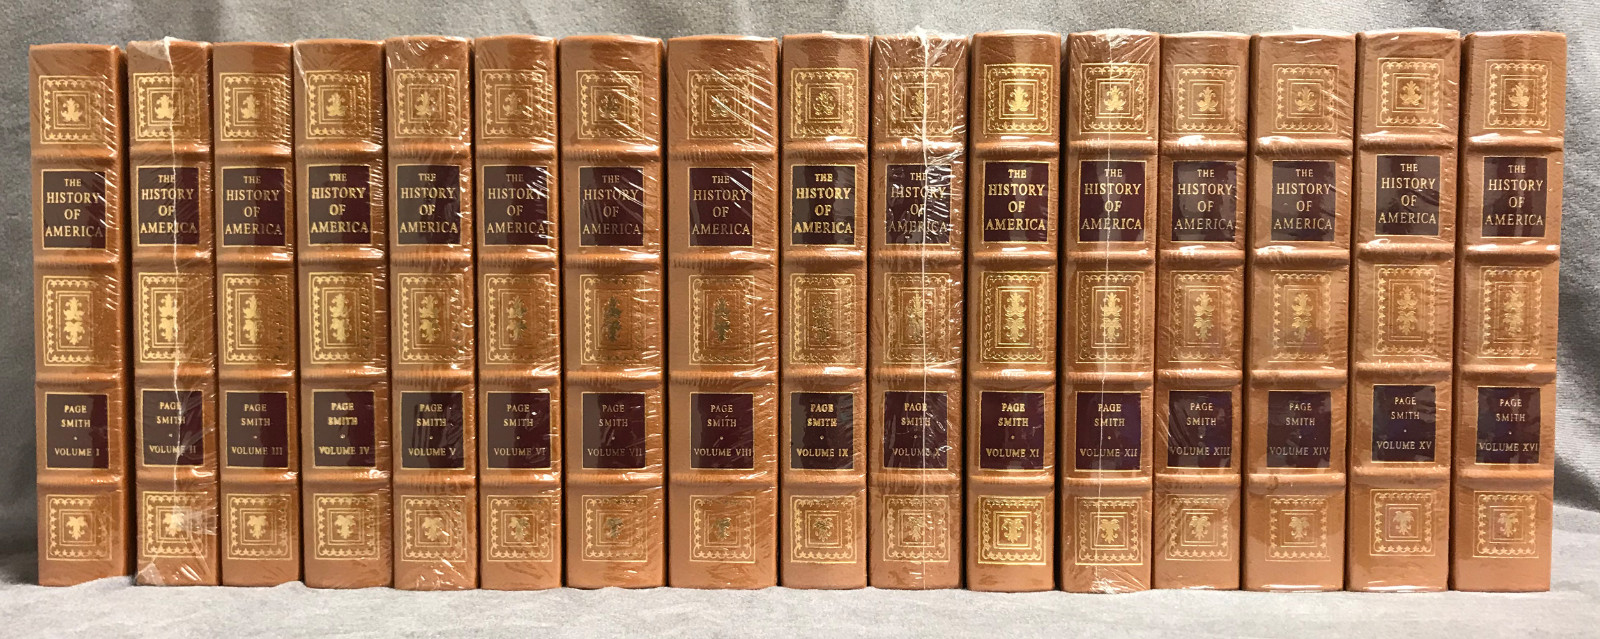 Image 1 of The History of America (16 Volume Set / Easton Press)